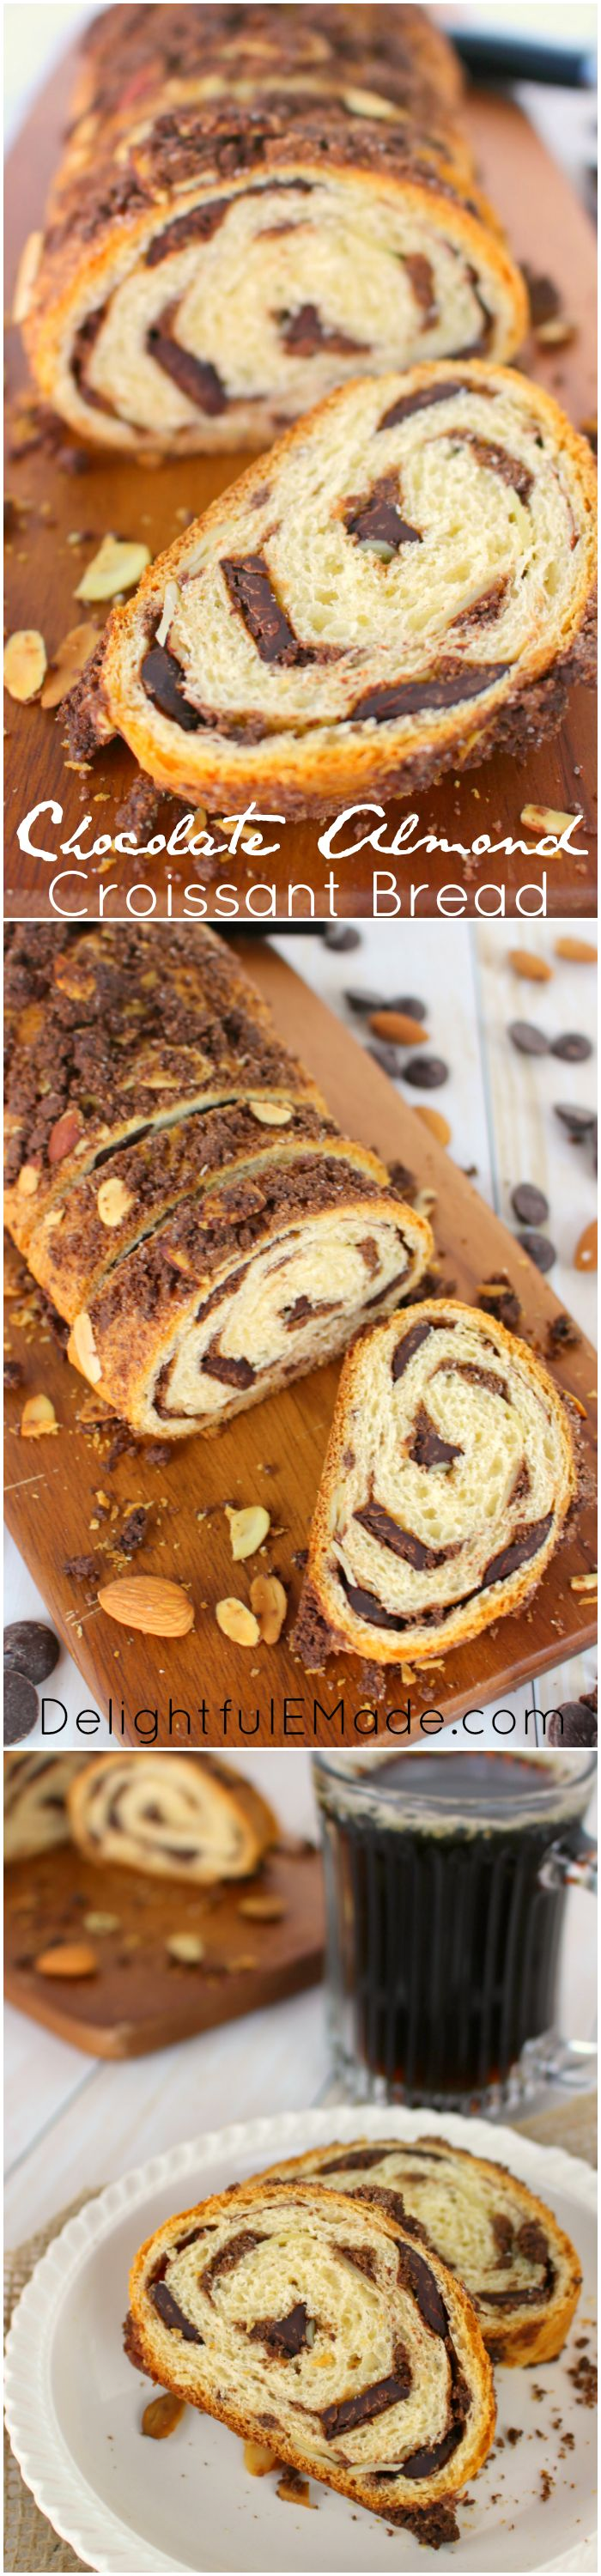 If you love chocolate and almond croissants, this Chocolate Almond Croissant Bread is definitely for you!  Loaded with lots of semi-sweet chocolate and sliced almonds, this easy to make breakfast bread is perfect with your morning coffee or tea!